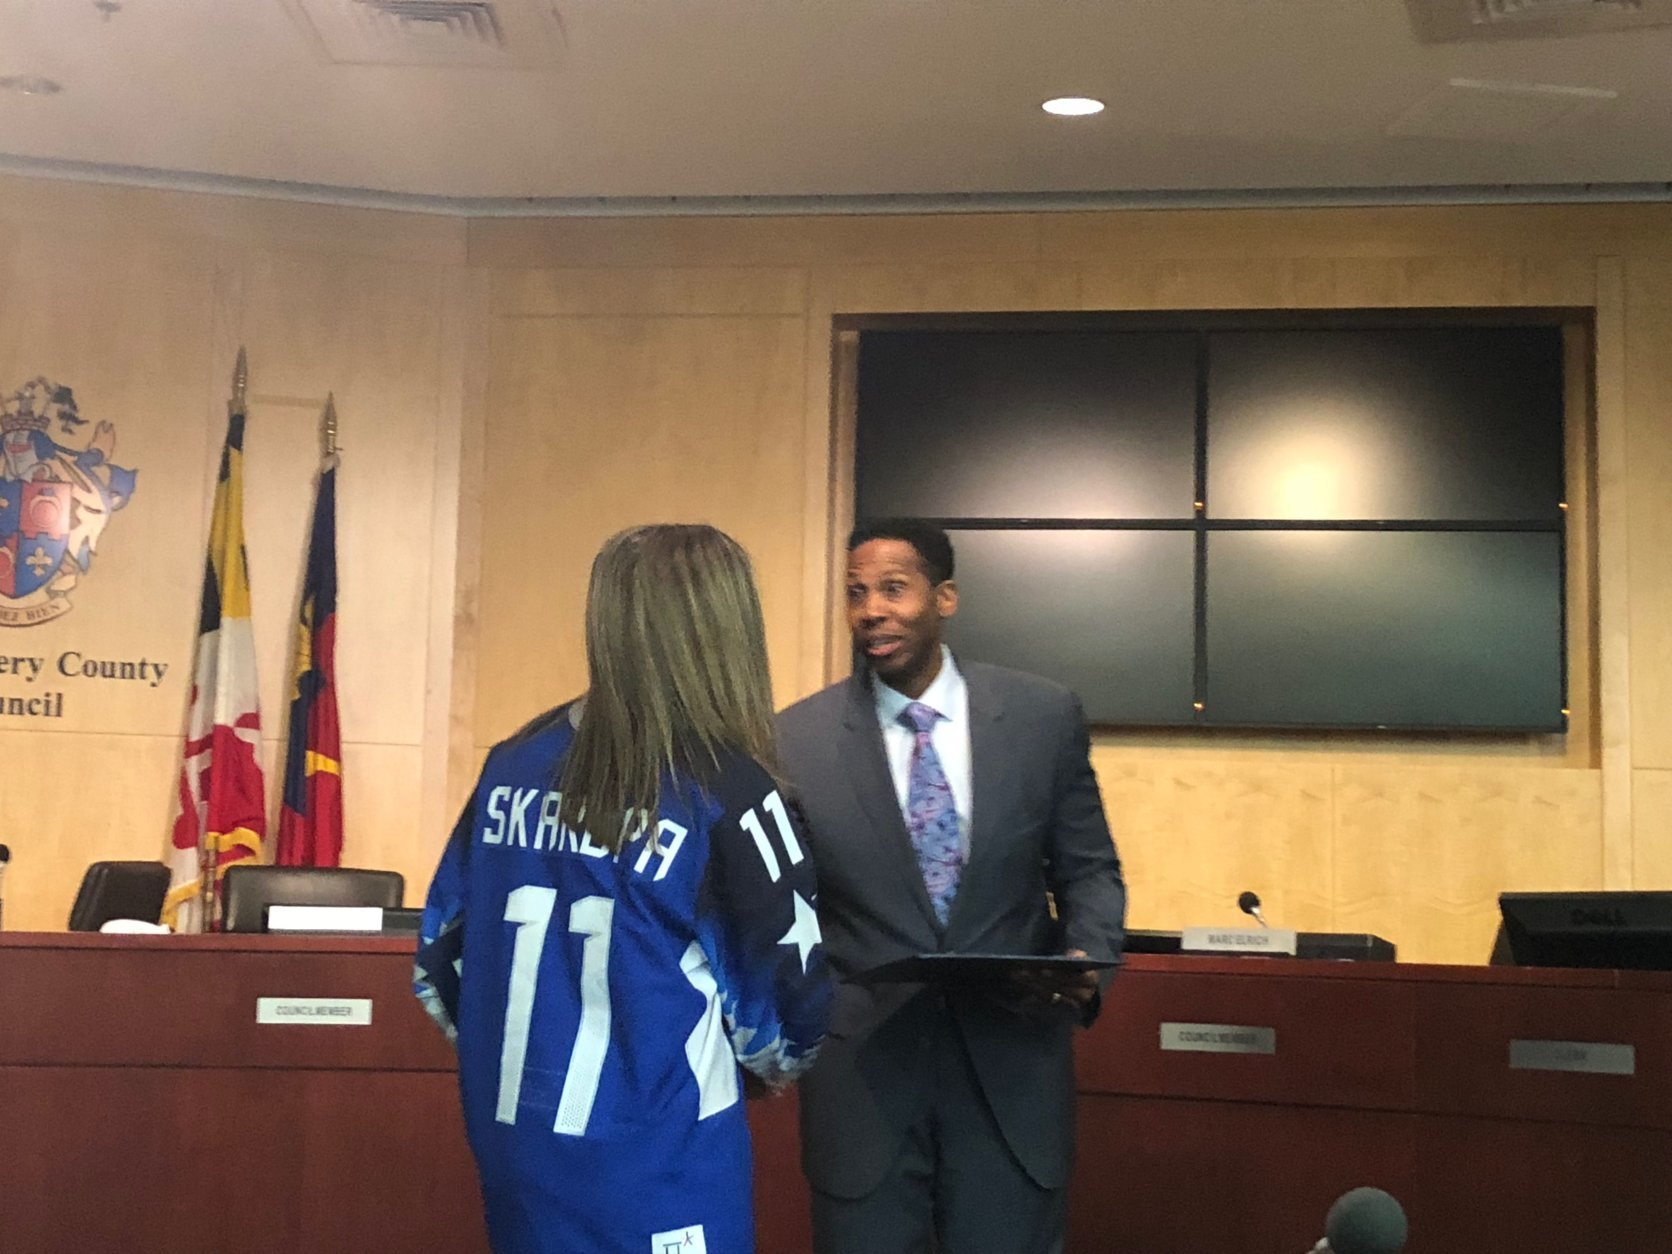 """""""Thank you, everyone, for having me here today,"""" Skarupa said at the meeting. """"It's such an honor to represent Montgomery County and Maryland. I love coming back here. This is home for me."""" (WTOP/Melissa Howell)"""